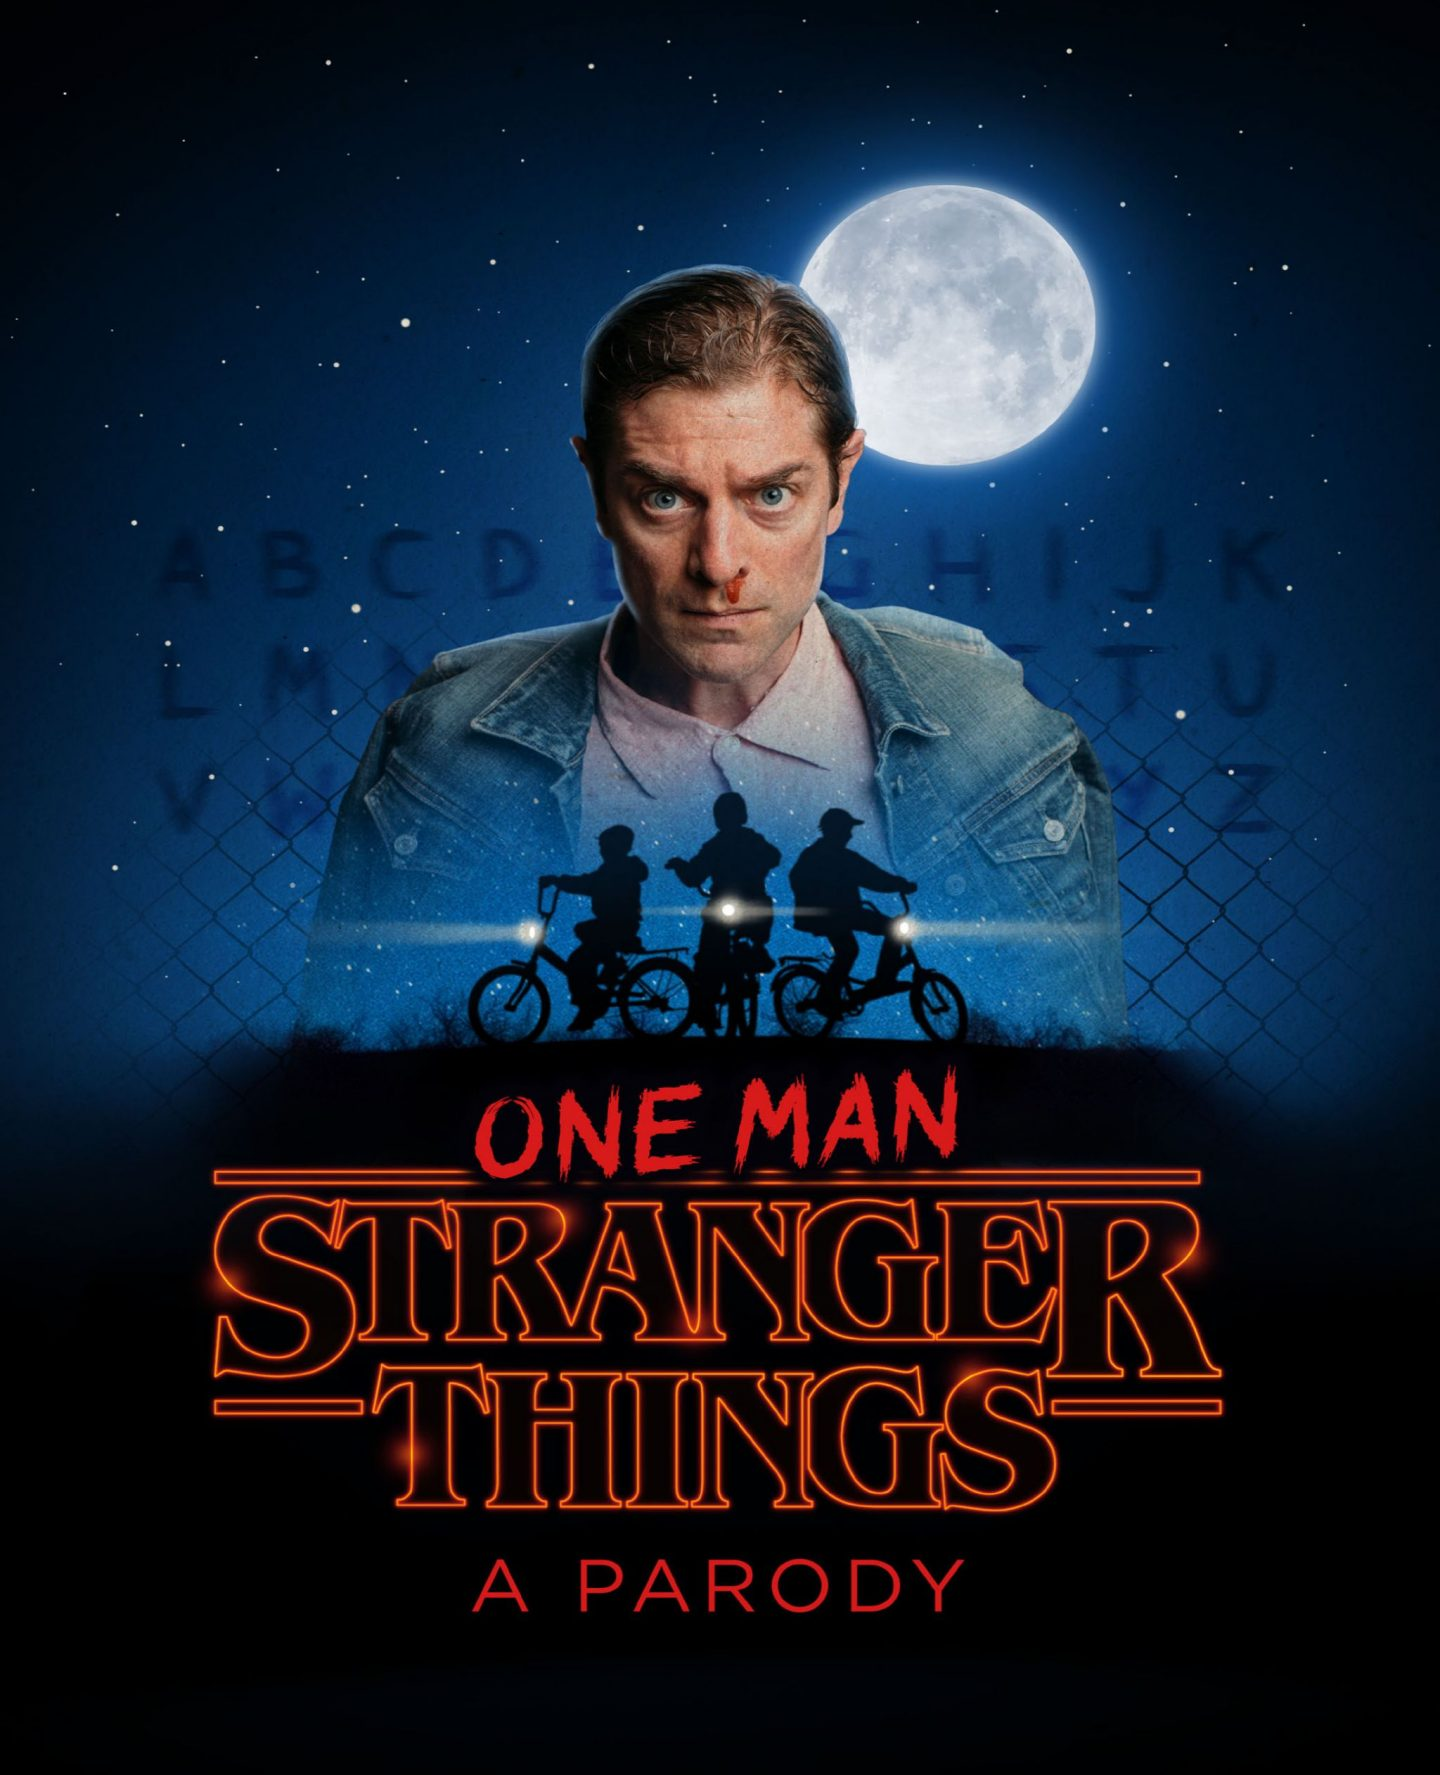 UPDATE: SHOW CANCELLED – Win a pair of tickets worth £43 to watch One Man Stranger Things: A Parody